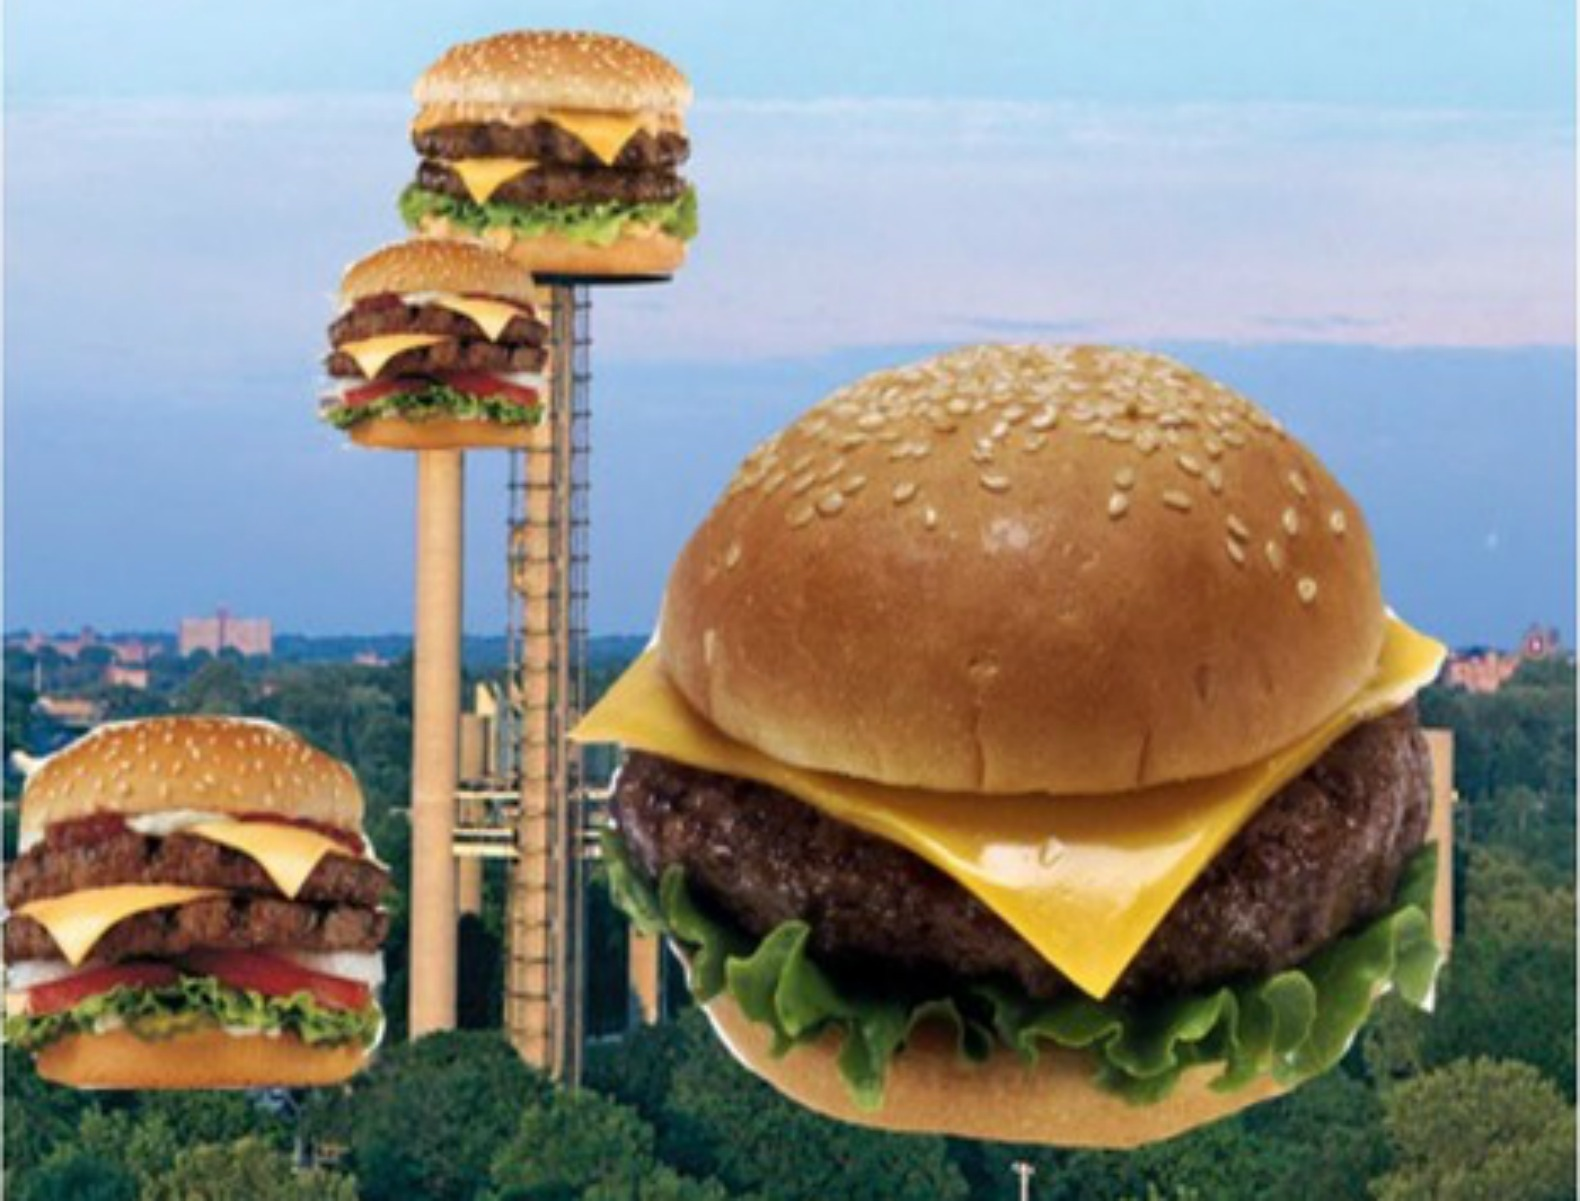 Giant cheeseburger-shaped museum proposed as a way to revitalize the New York State Pavilion